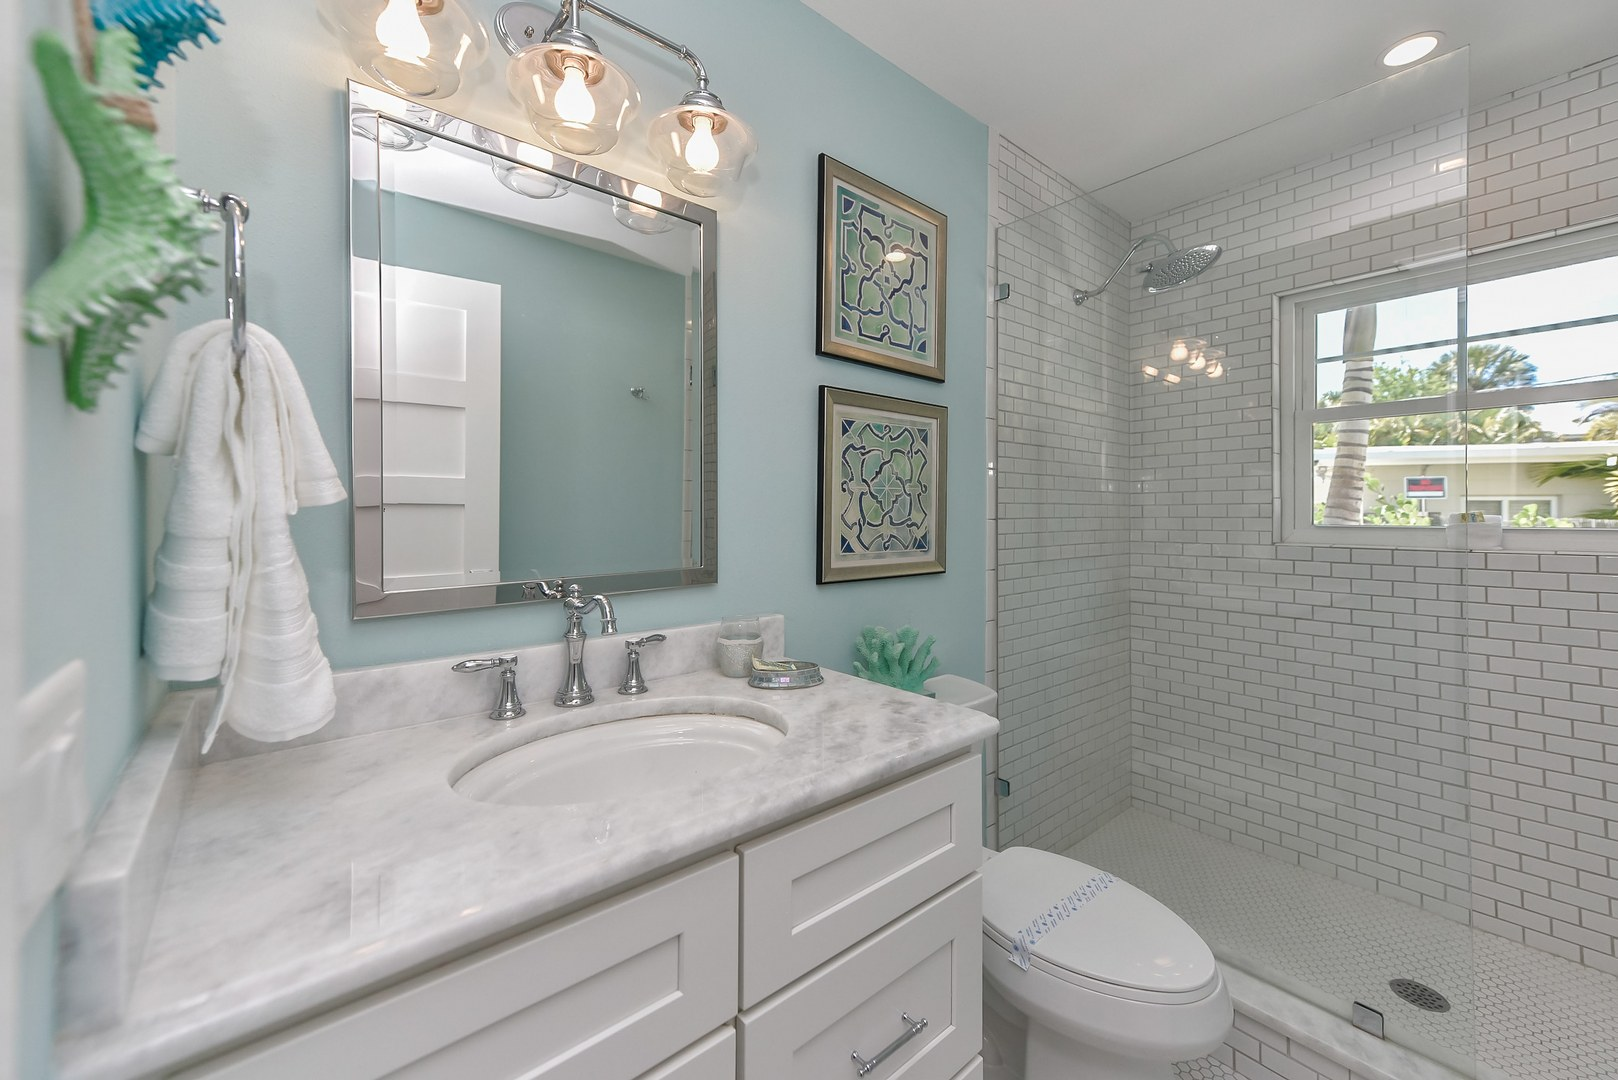 Both Bunk Bed Rooms share this Bath